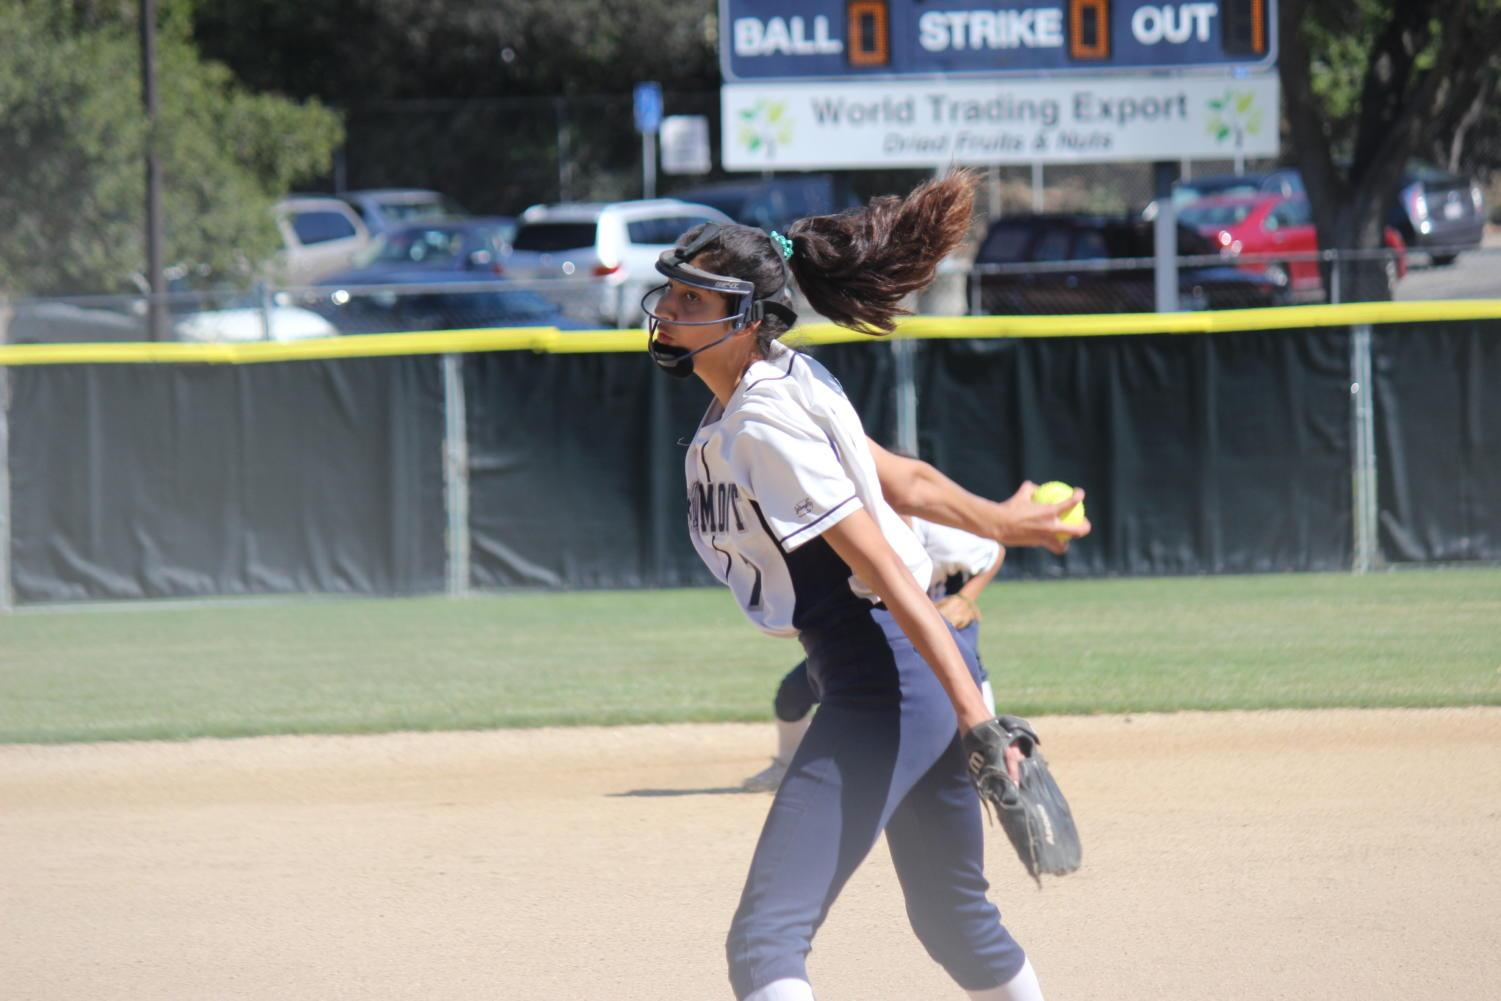 Freshman pitcher Nadia Chopoff pitches the ball.